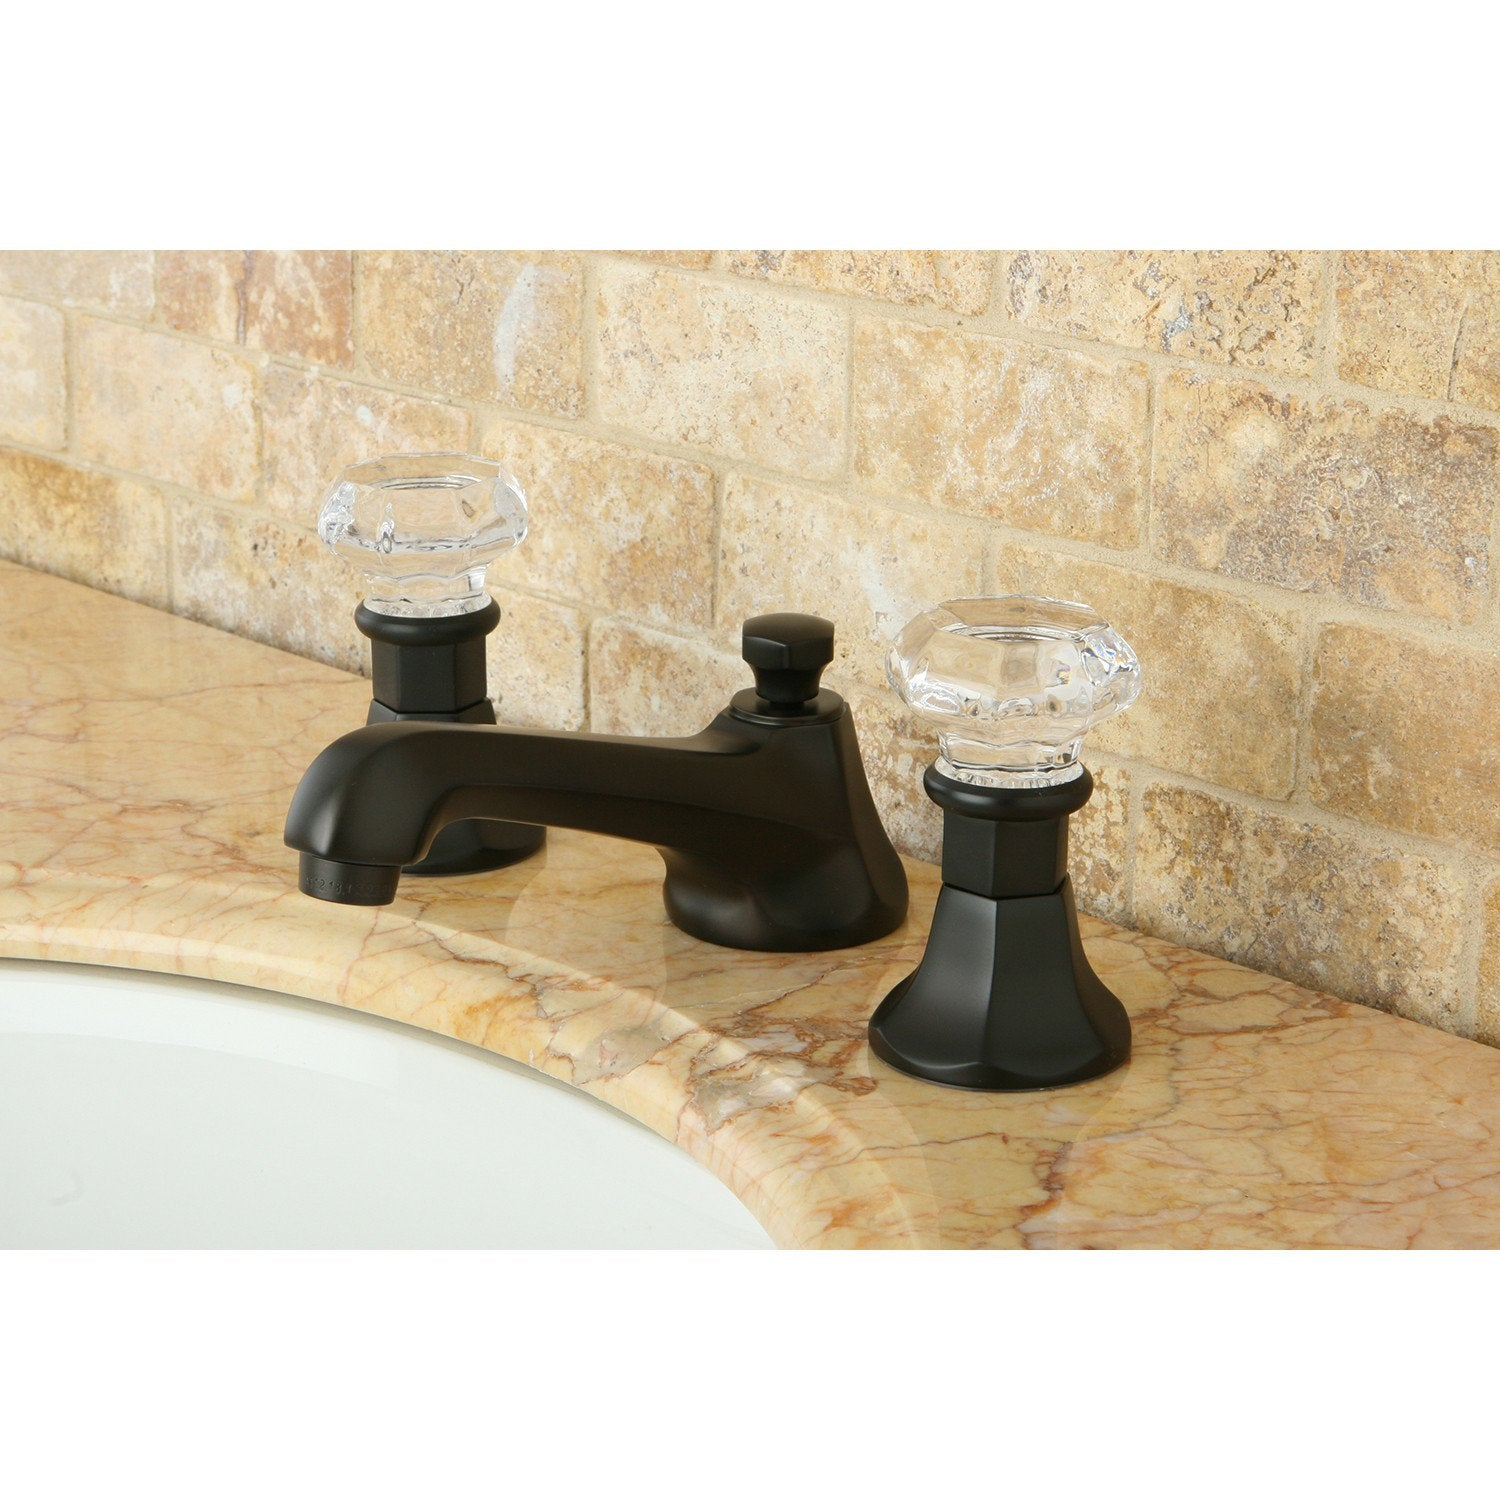 Kingston Oil Rubbed Bronze 2 Handle Widespread Bathroom Faucet w Pop-up KS4465WCL